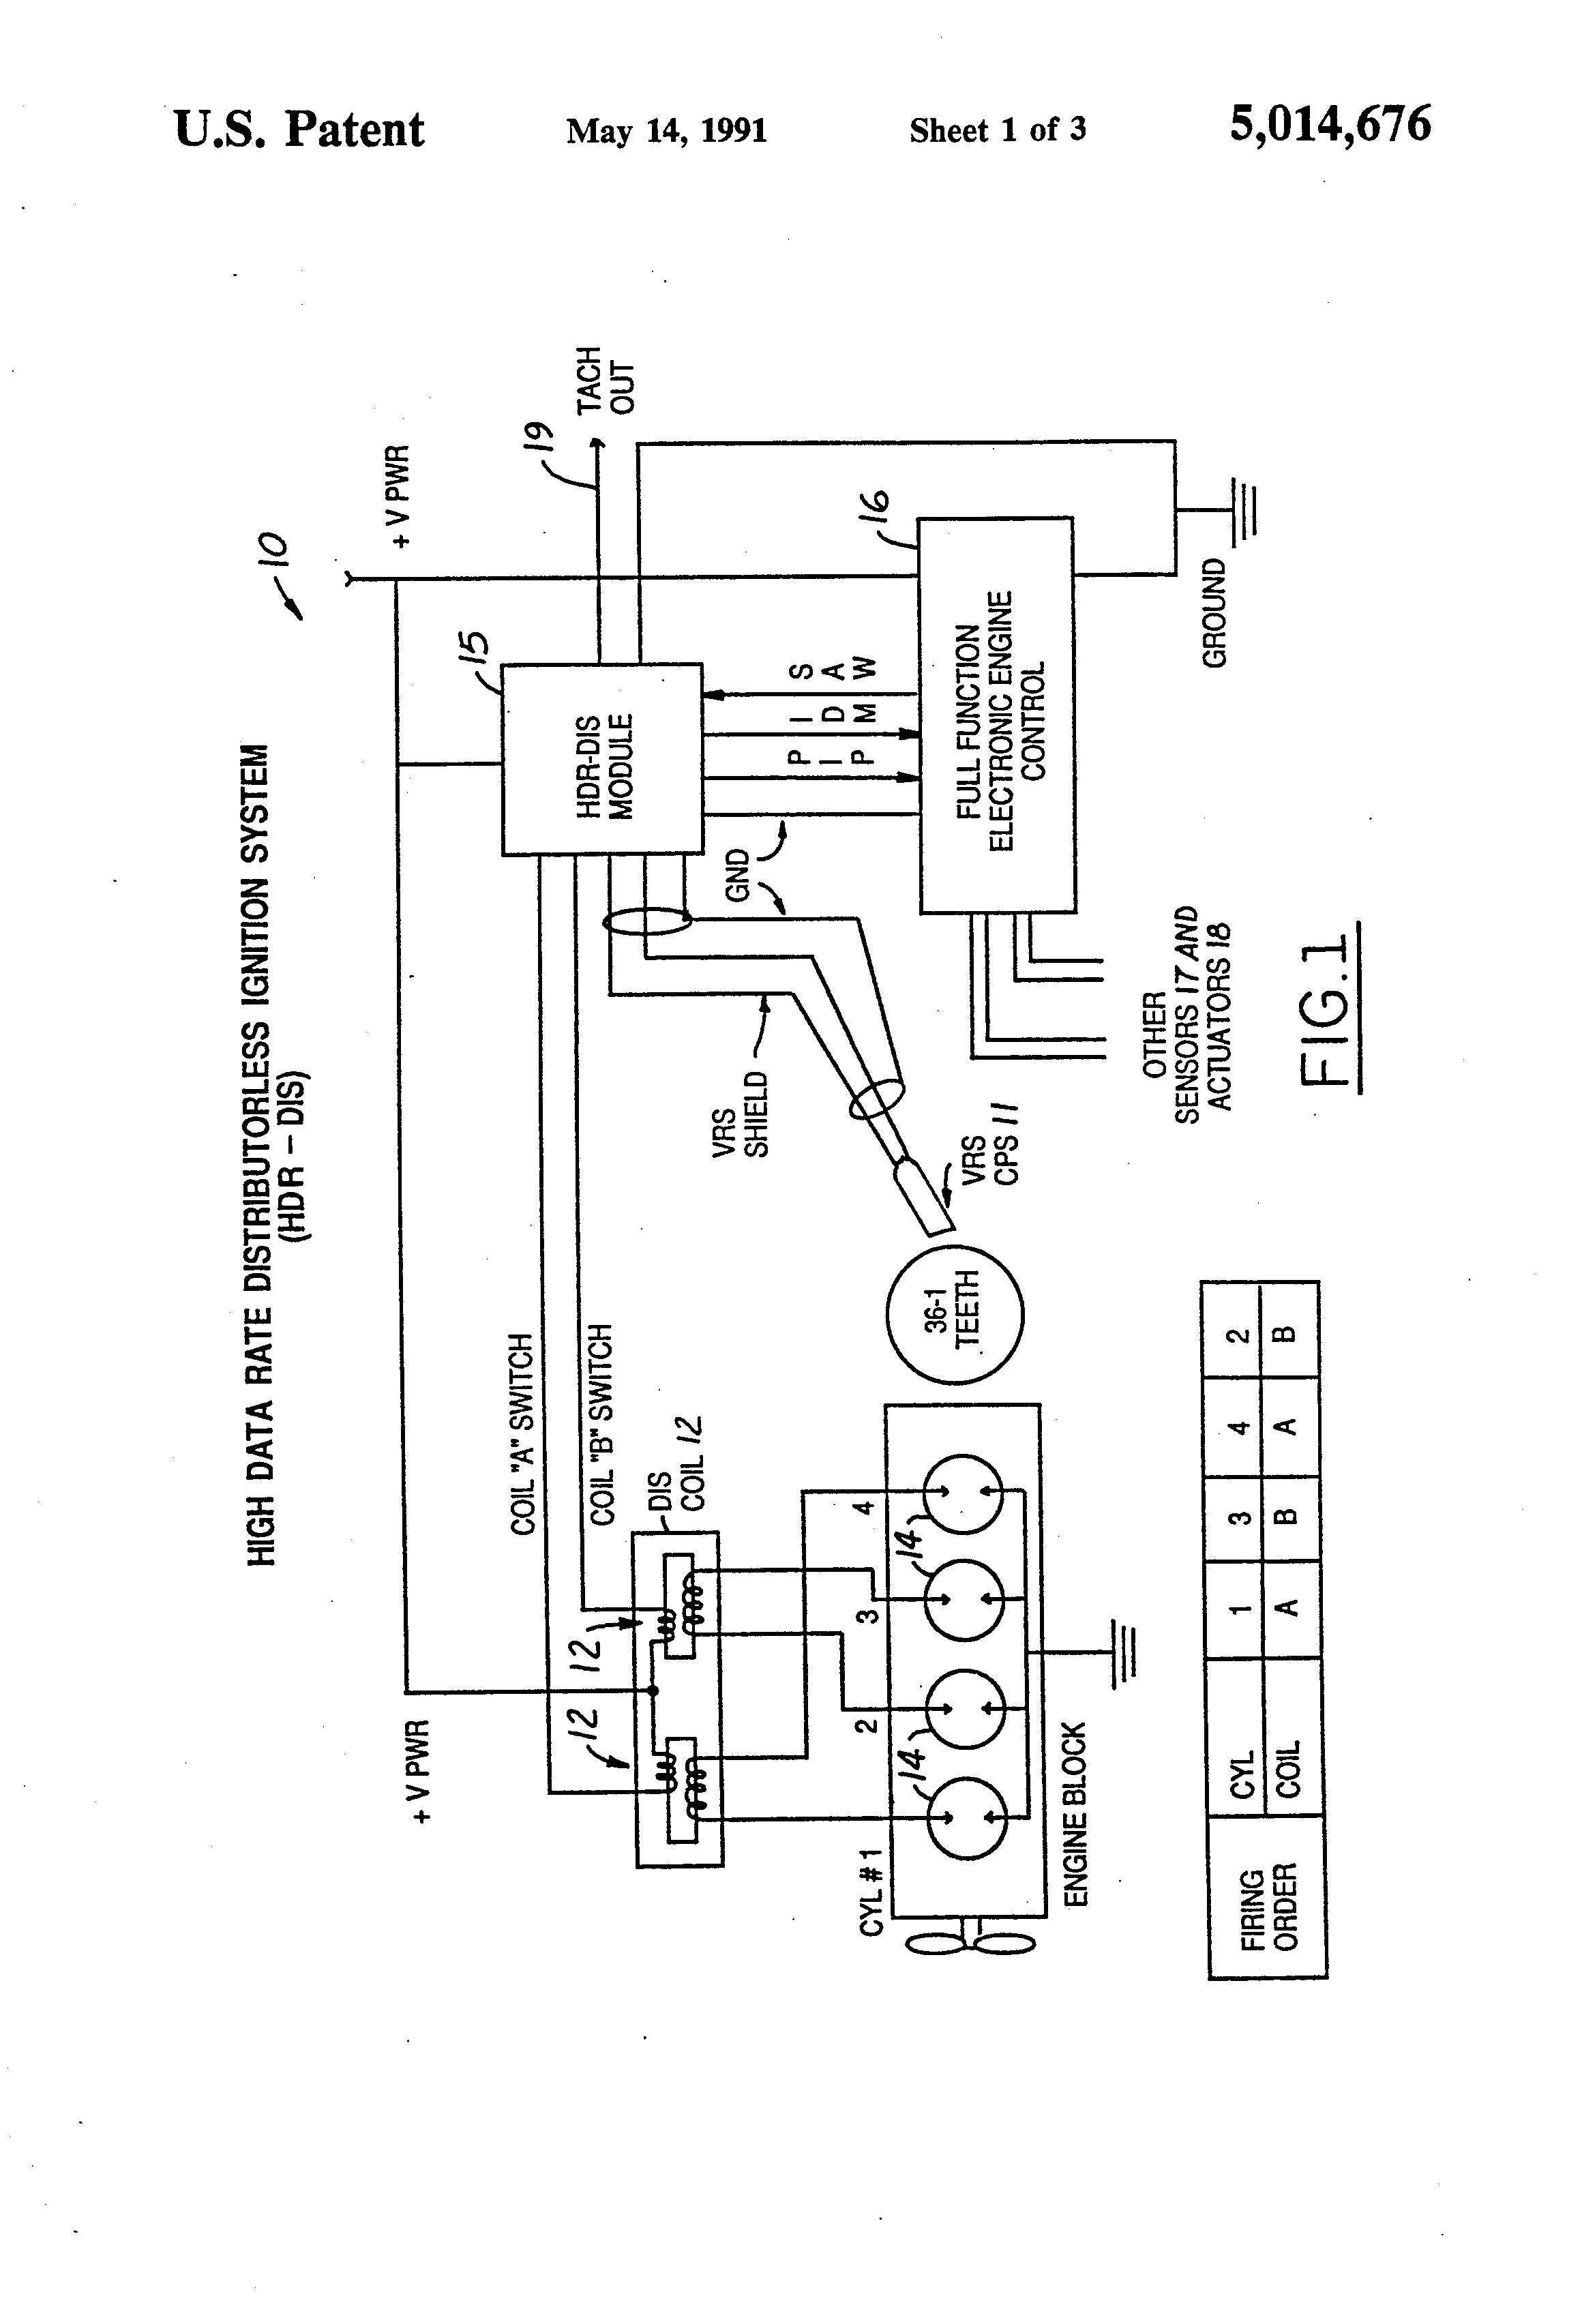 US5014676 1?resize\=665%2C977 wiring diagram dea355 microphone wiring diagrams \u2022 wiring diagram  at mr168.co